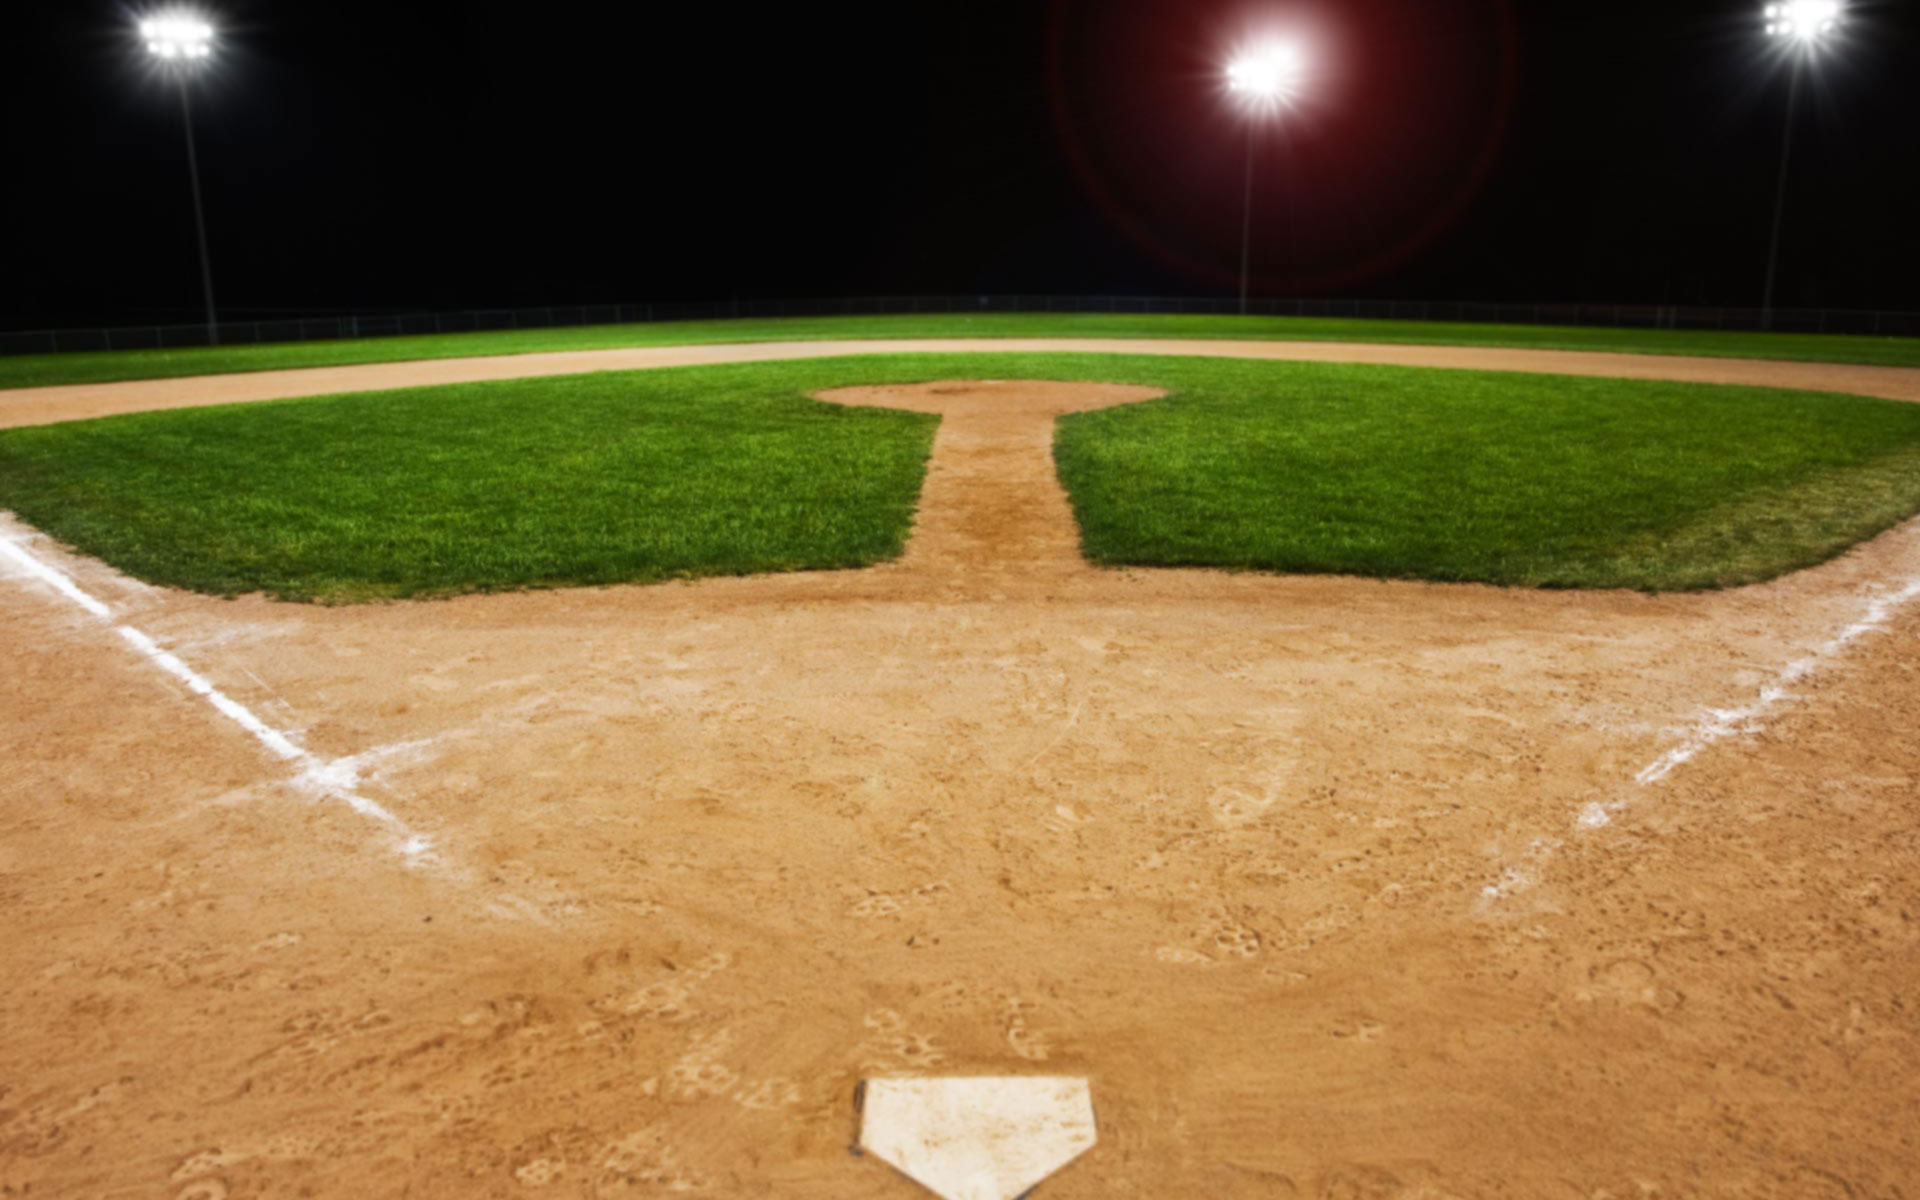 Baseball and Health Care: What Medicine Can Learn from Our Nation's Pastime